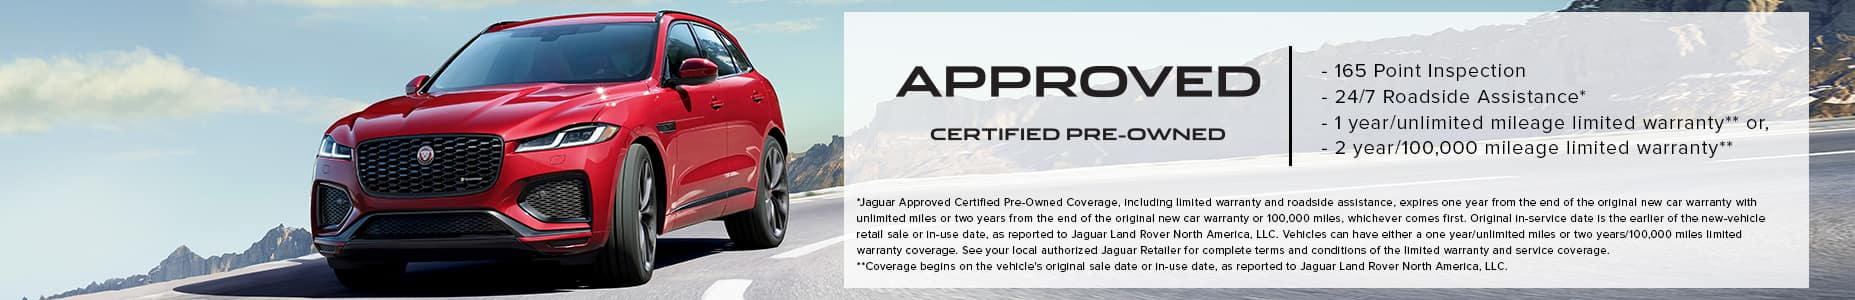 Approved Certified Pre-Owned F-PACE